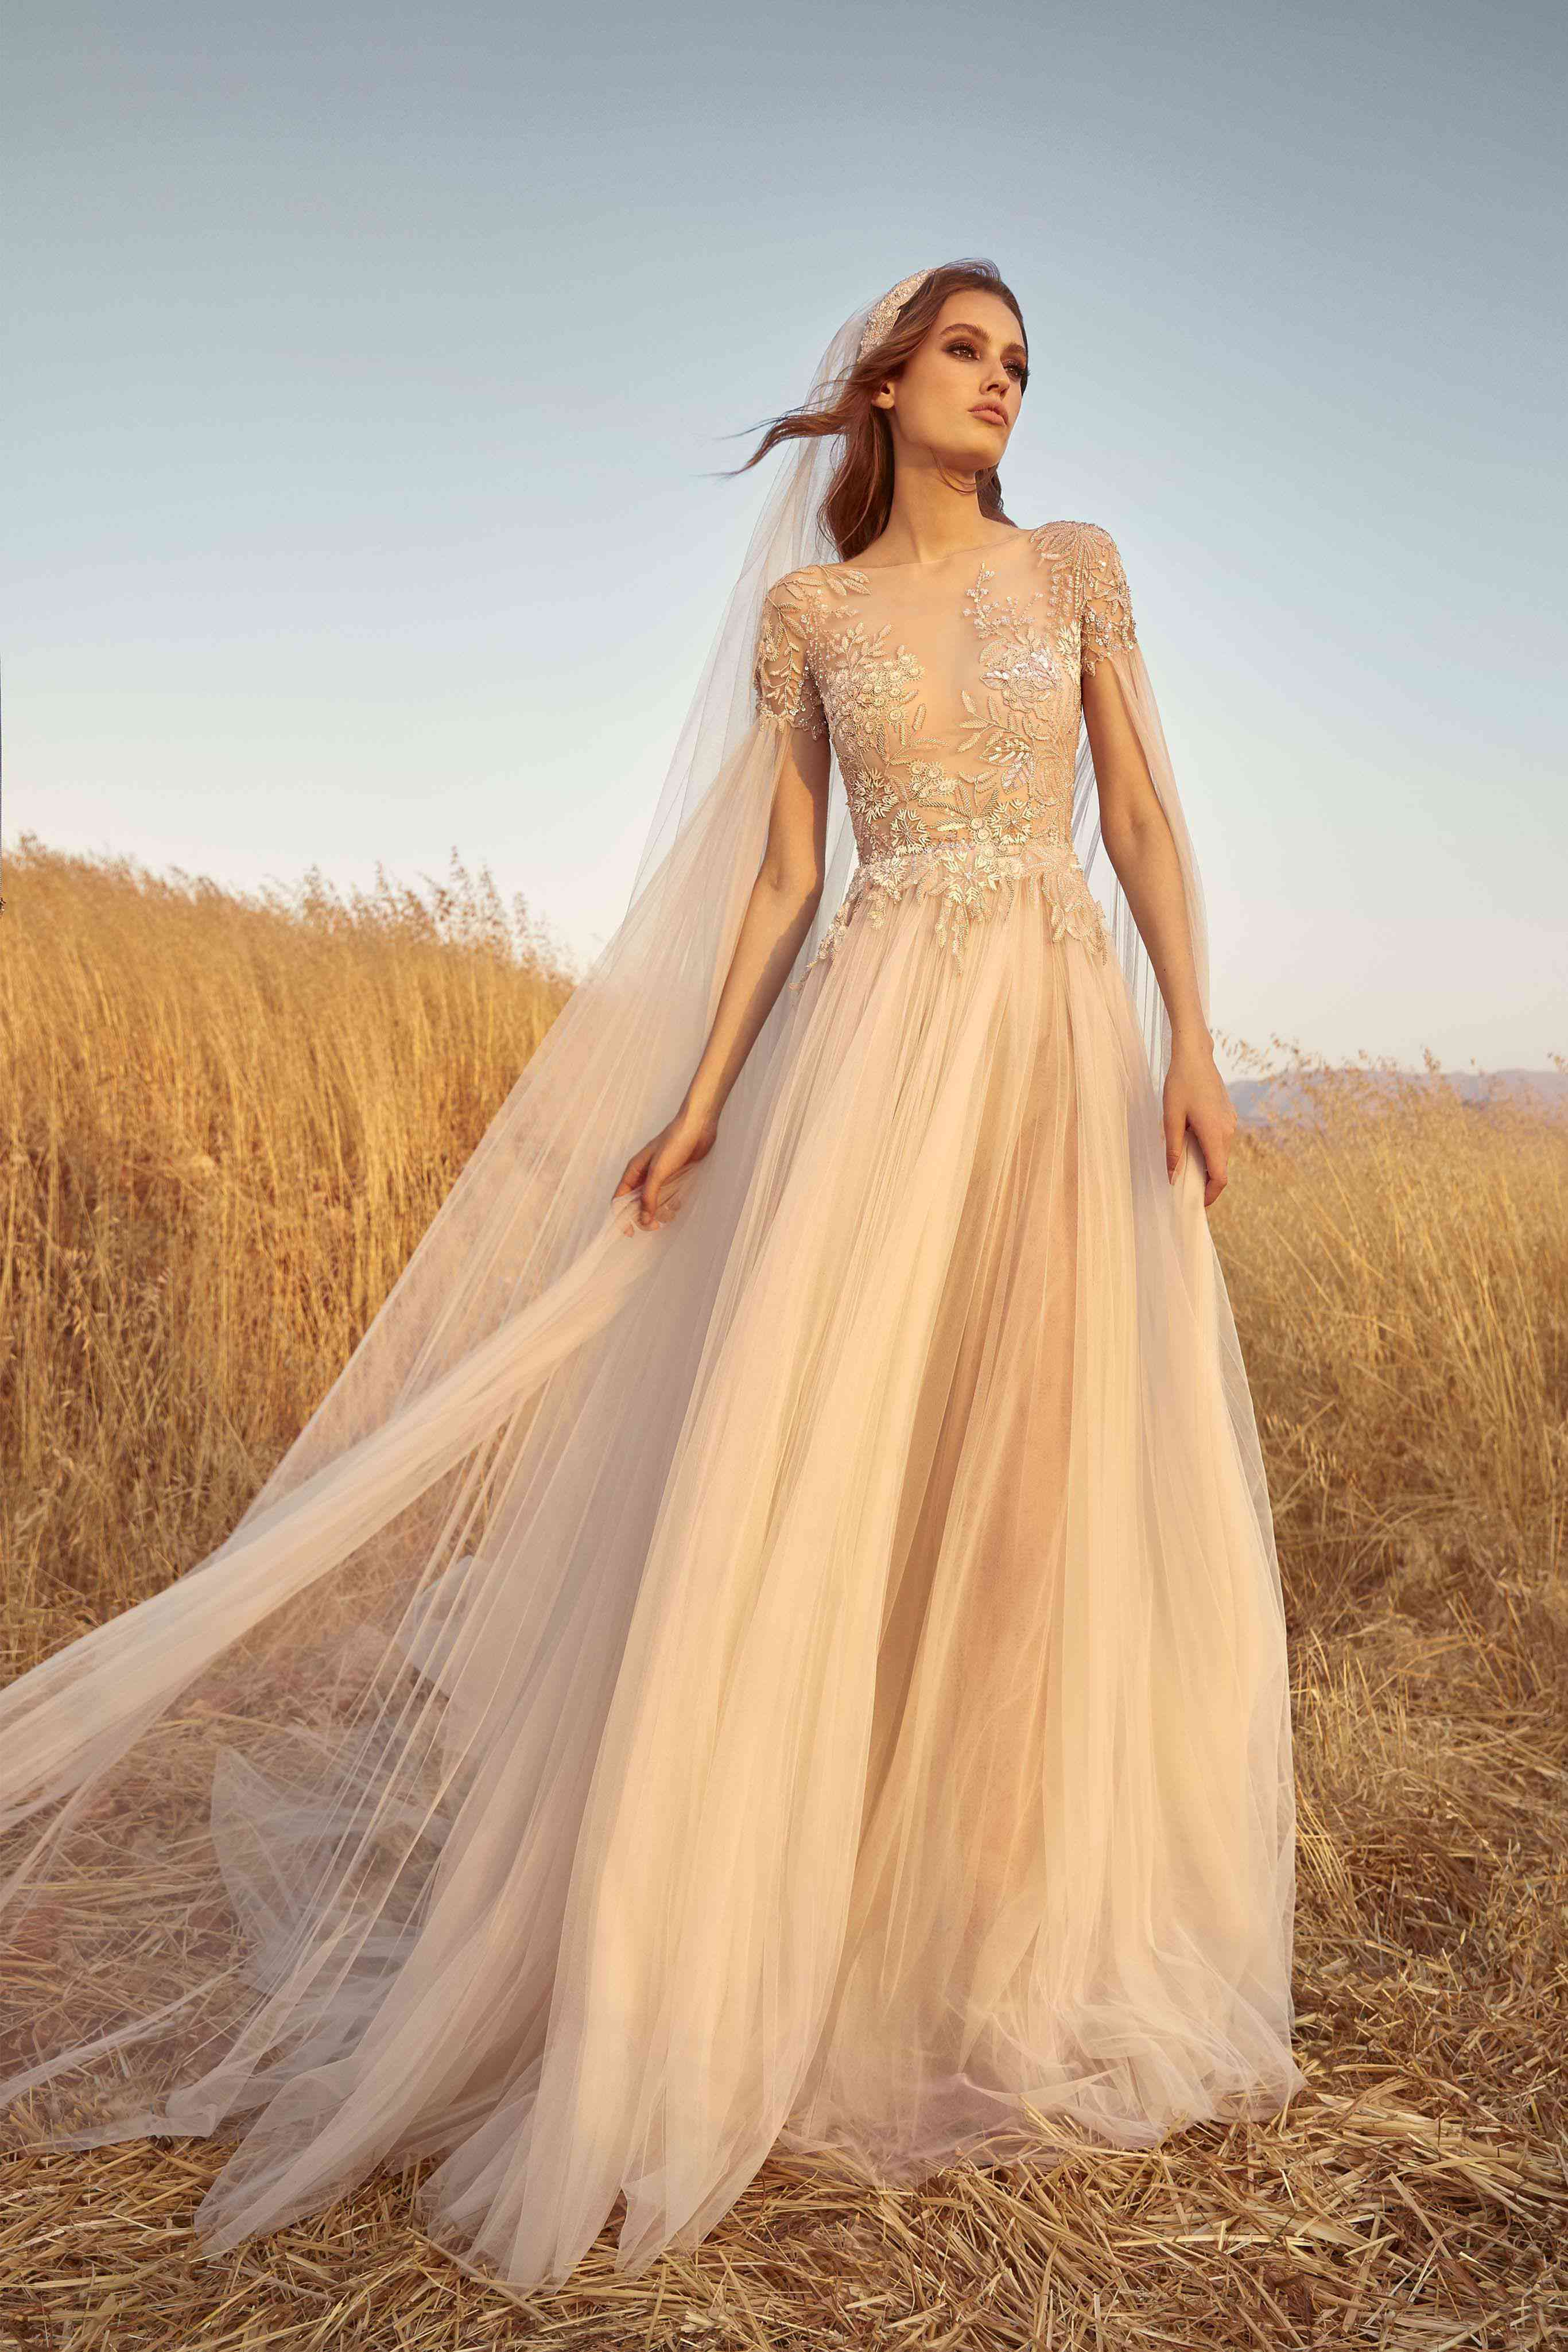 Model in a Flared, pleated sand dollar tulle dress with embroidered bodice and dramatic long pleated cape-like tulle sleeves and matching headpiece